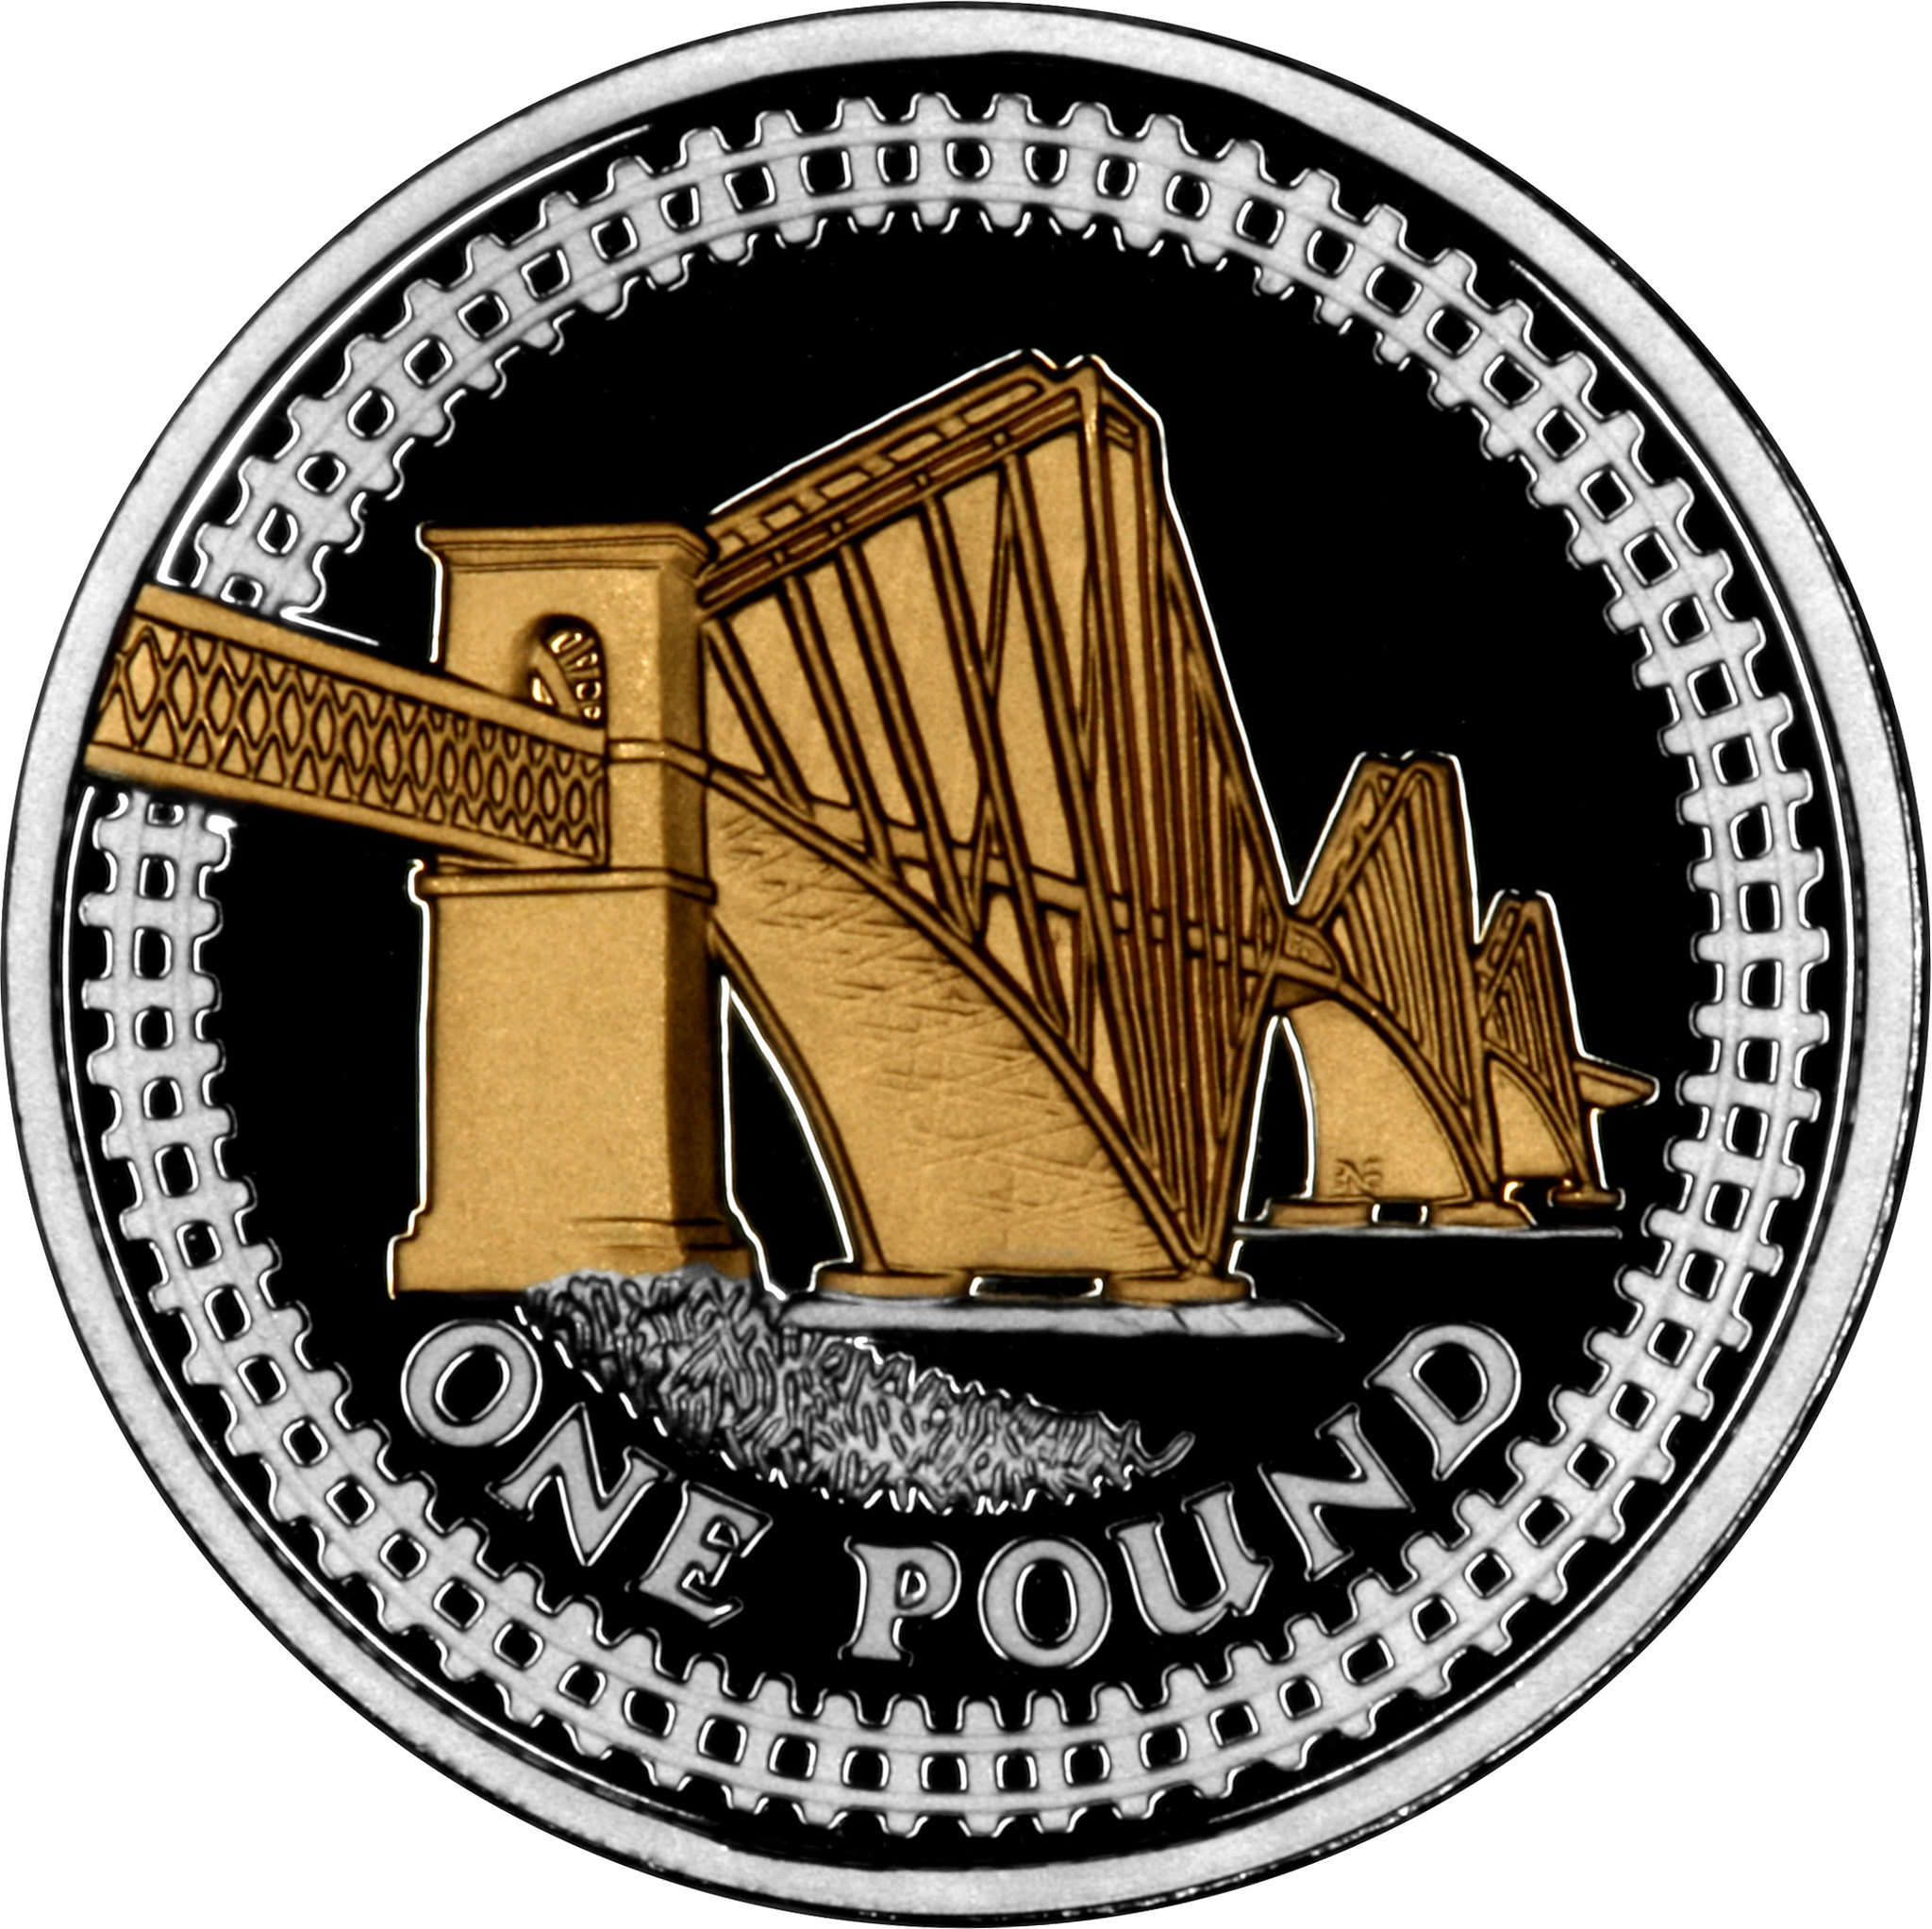 One Pound 2008 Forth Railway Bridge (NCLT): Photo 2008 UK £1 - Silver Proof 25th Anniversary 14 Coin Set